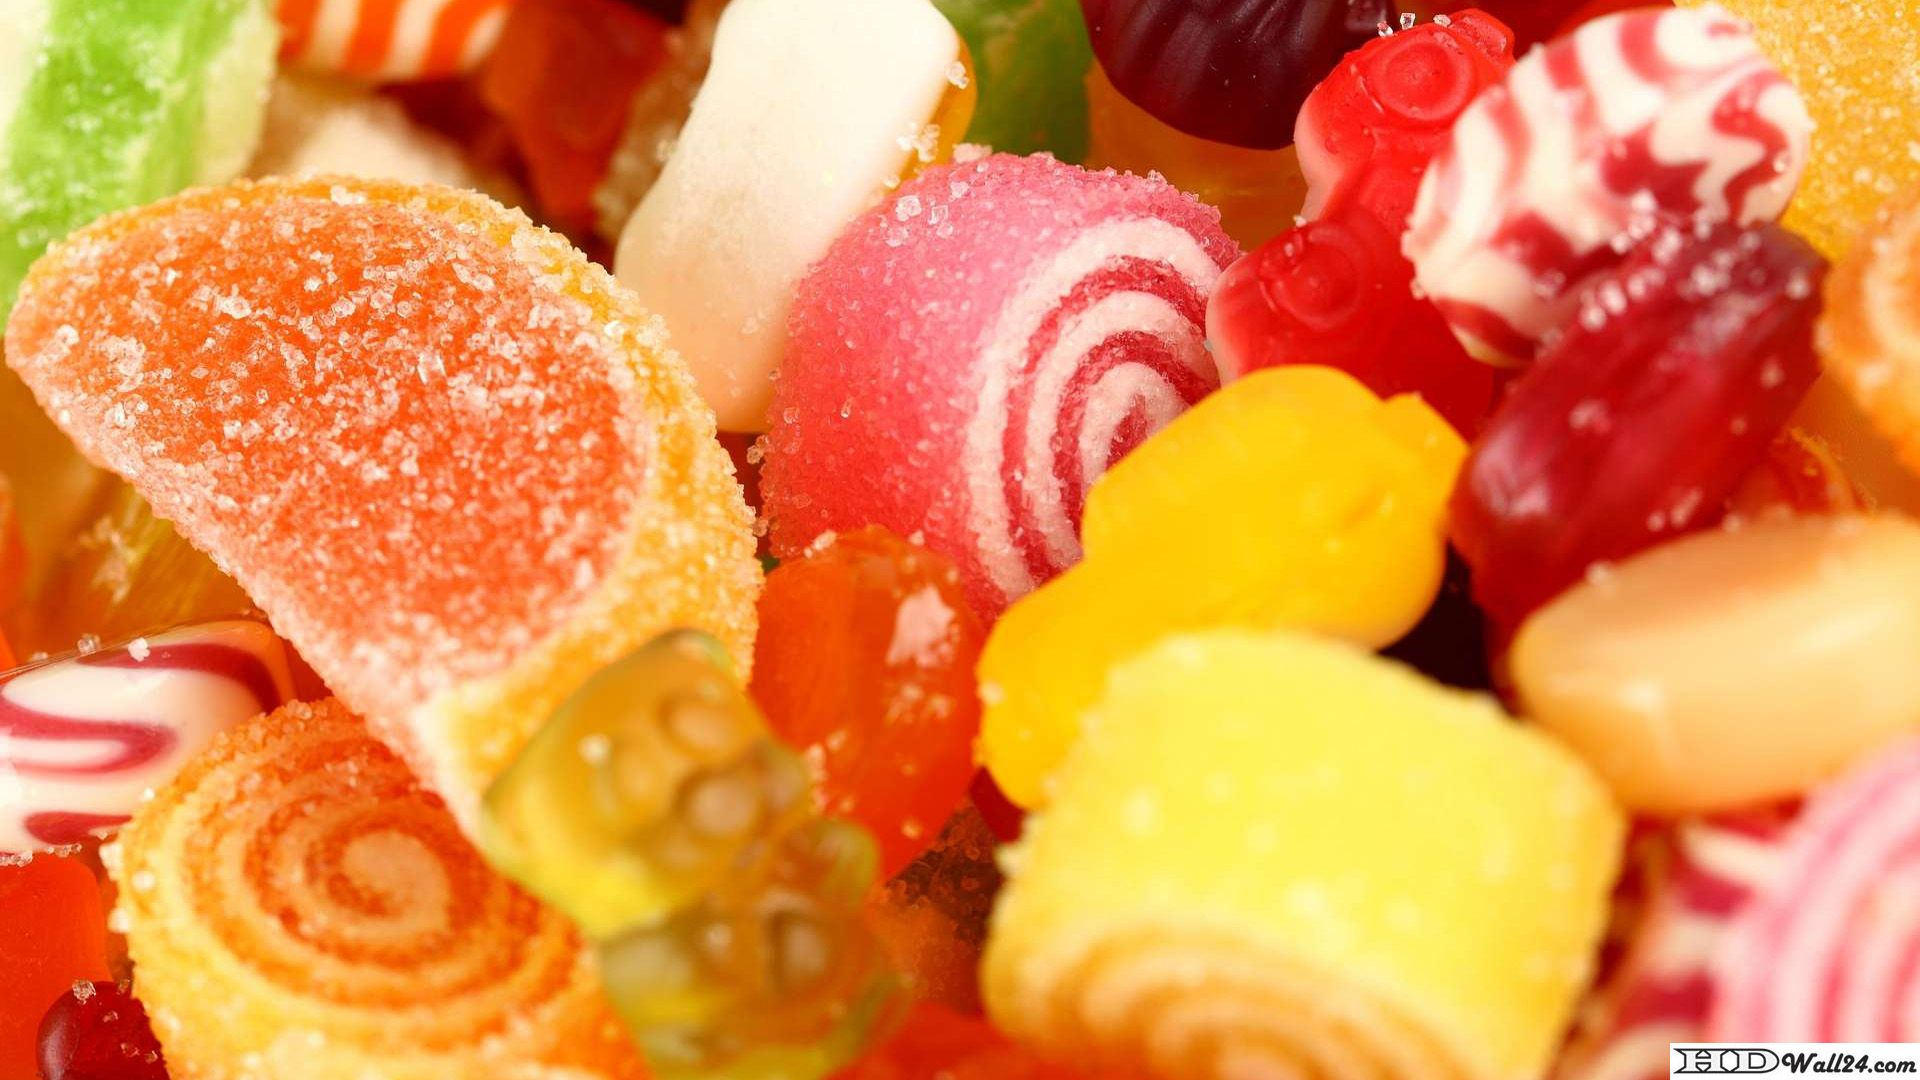 Various Candy Wallpapers Free Hd Wallpaper Download Food Wallpaper Confectionery Food Pictures